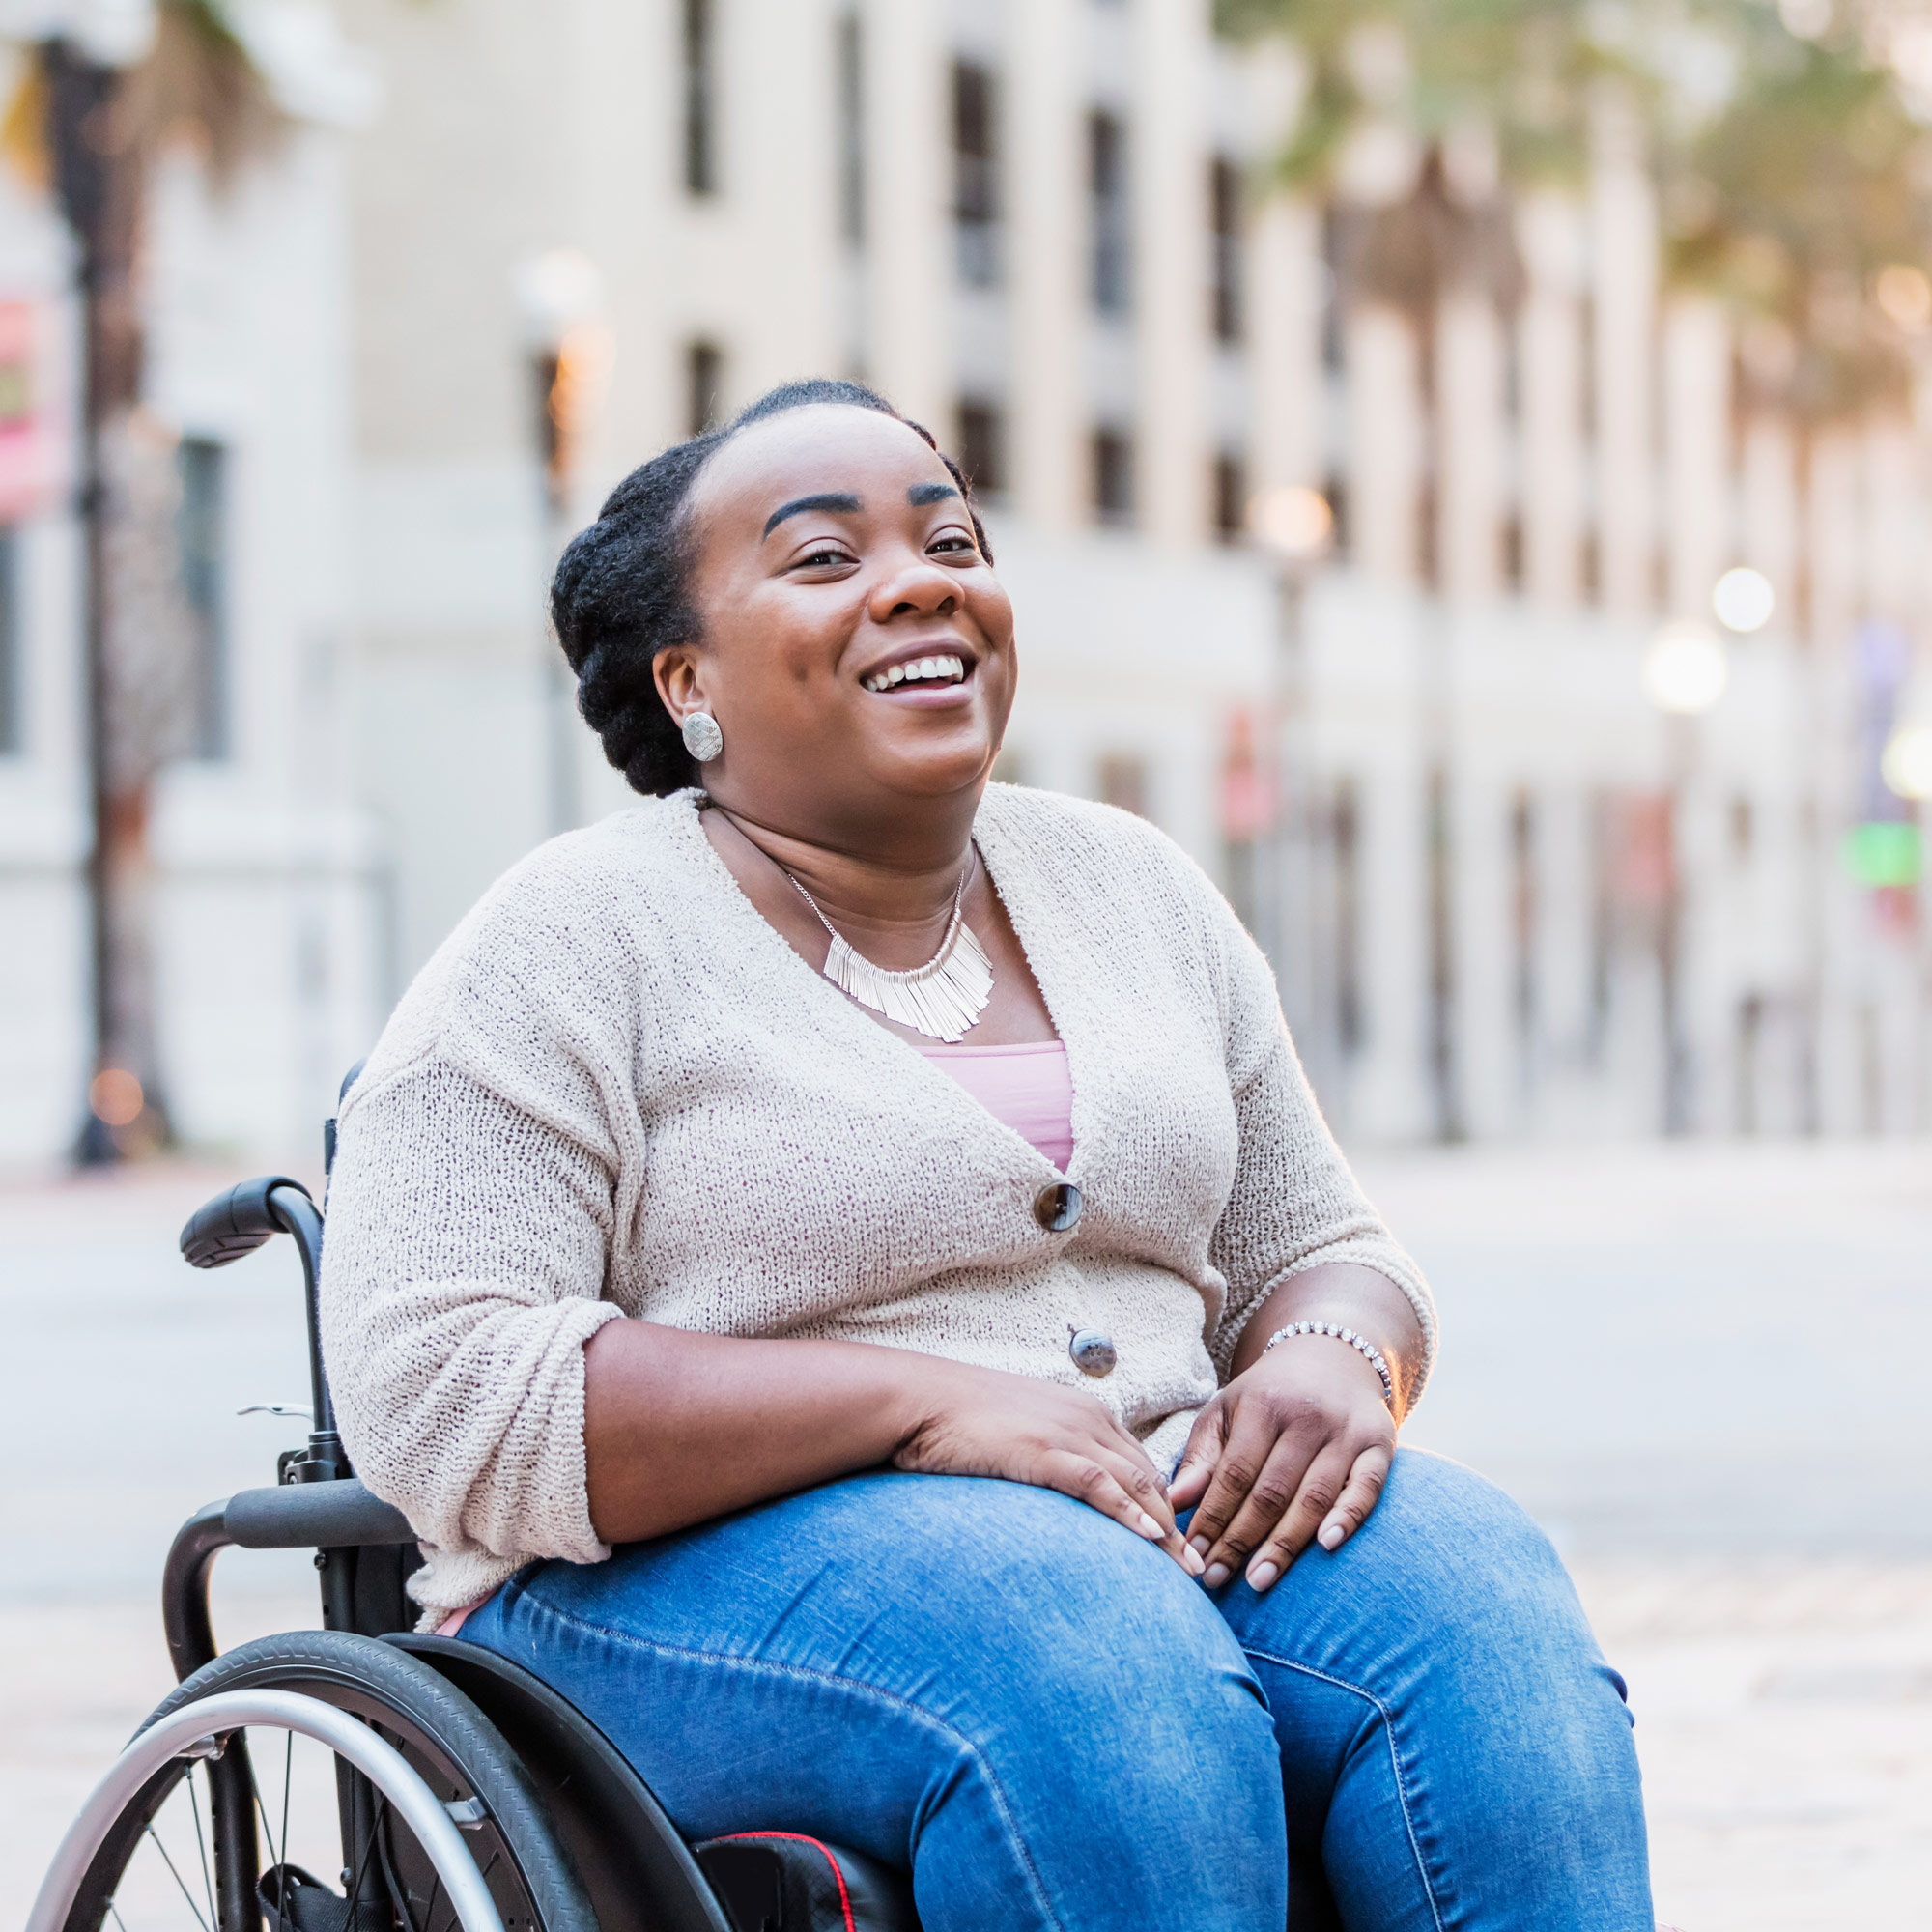 A woman in a wheel chair laughs.